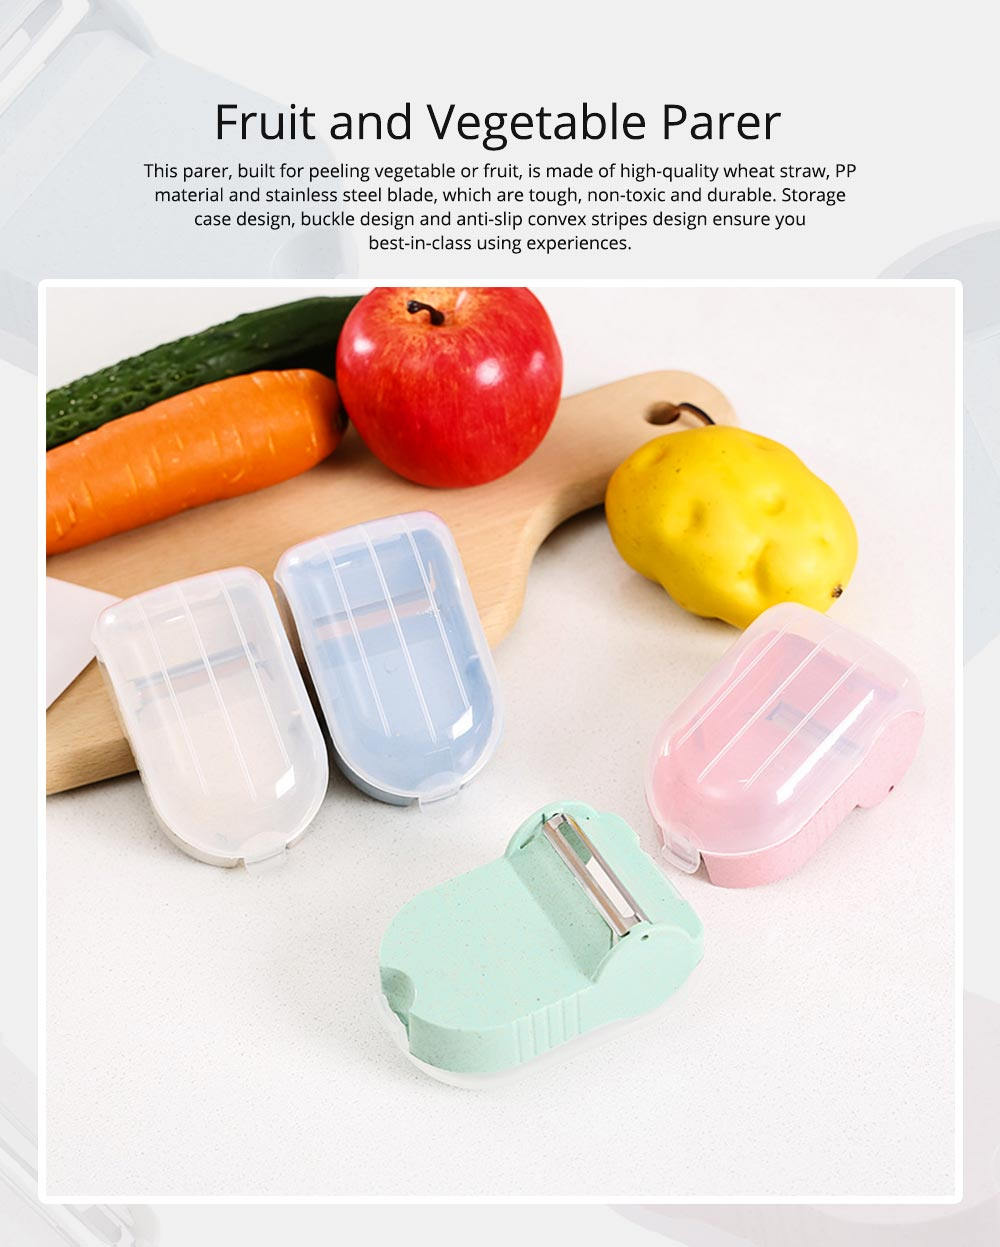 Creative Wheat Straw Stainless Steel Vegetable Fruit Parer, Carrot Cucumber Peeler with Storage Box Kitchen Tools 0